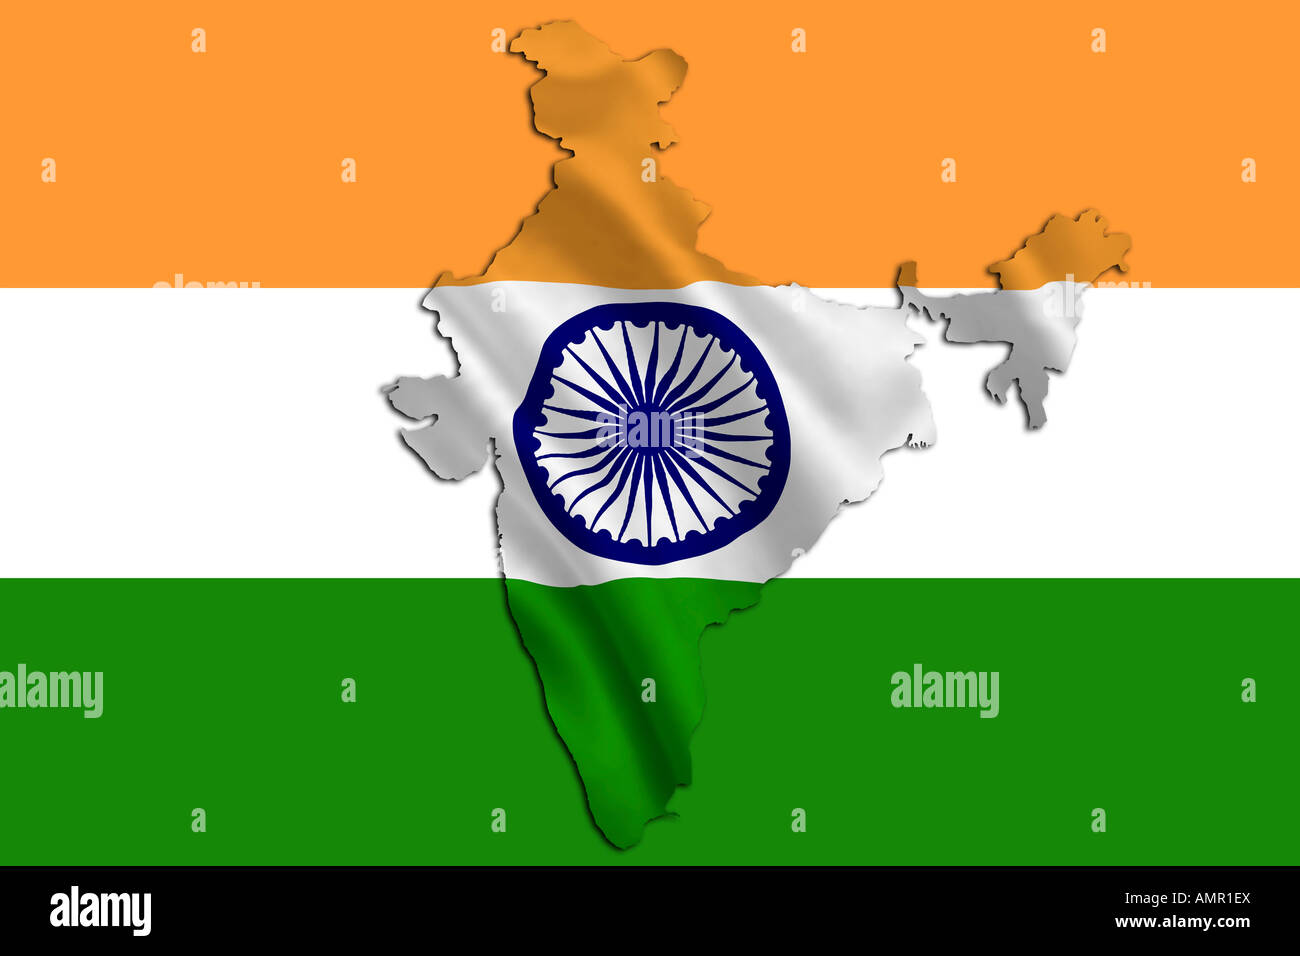 India Map Flag.India Map And Flag Design Stock Photo 15319873 Alamy